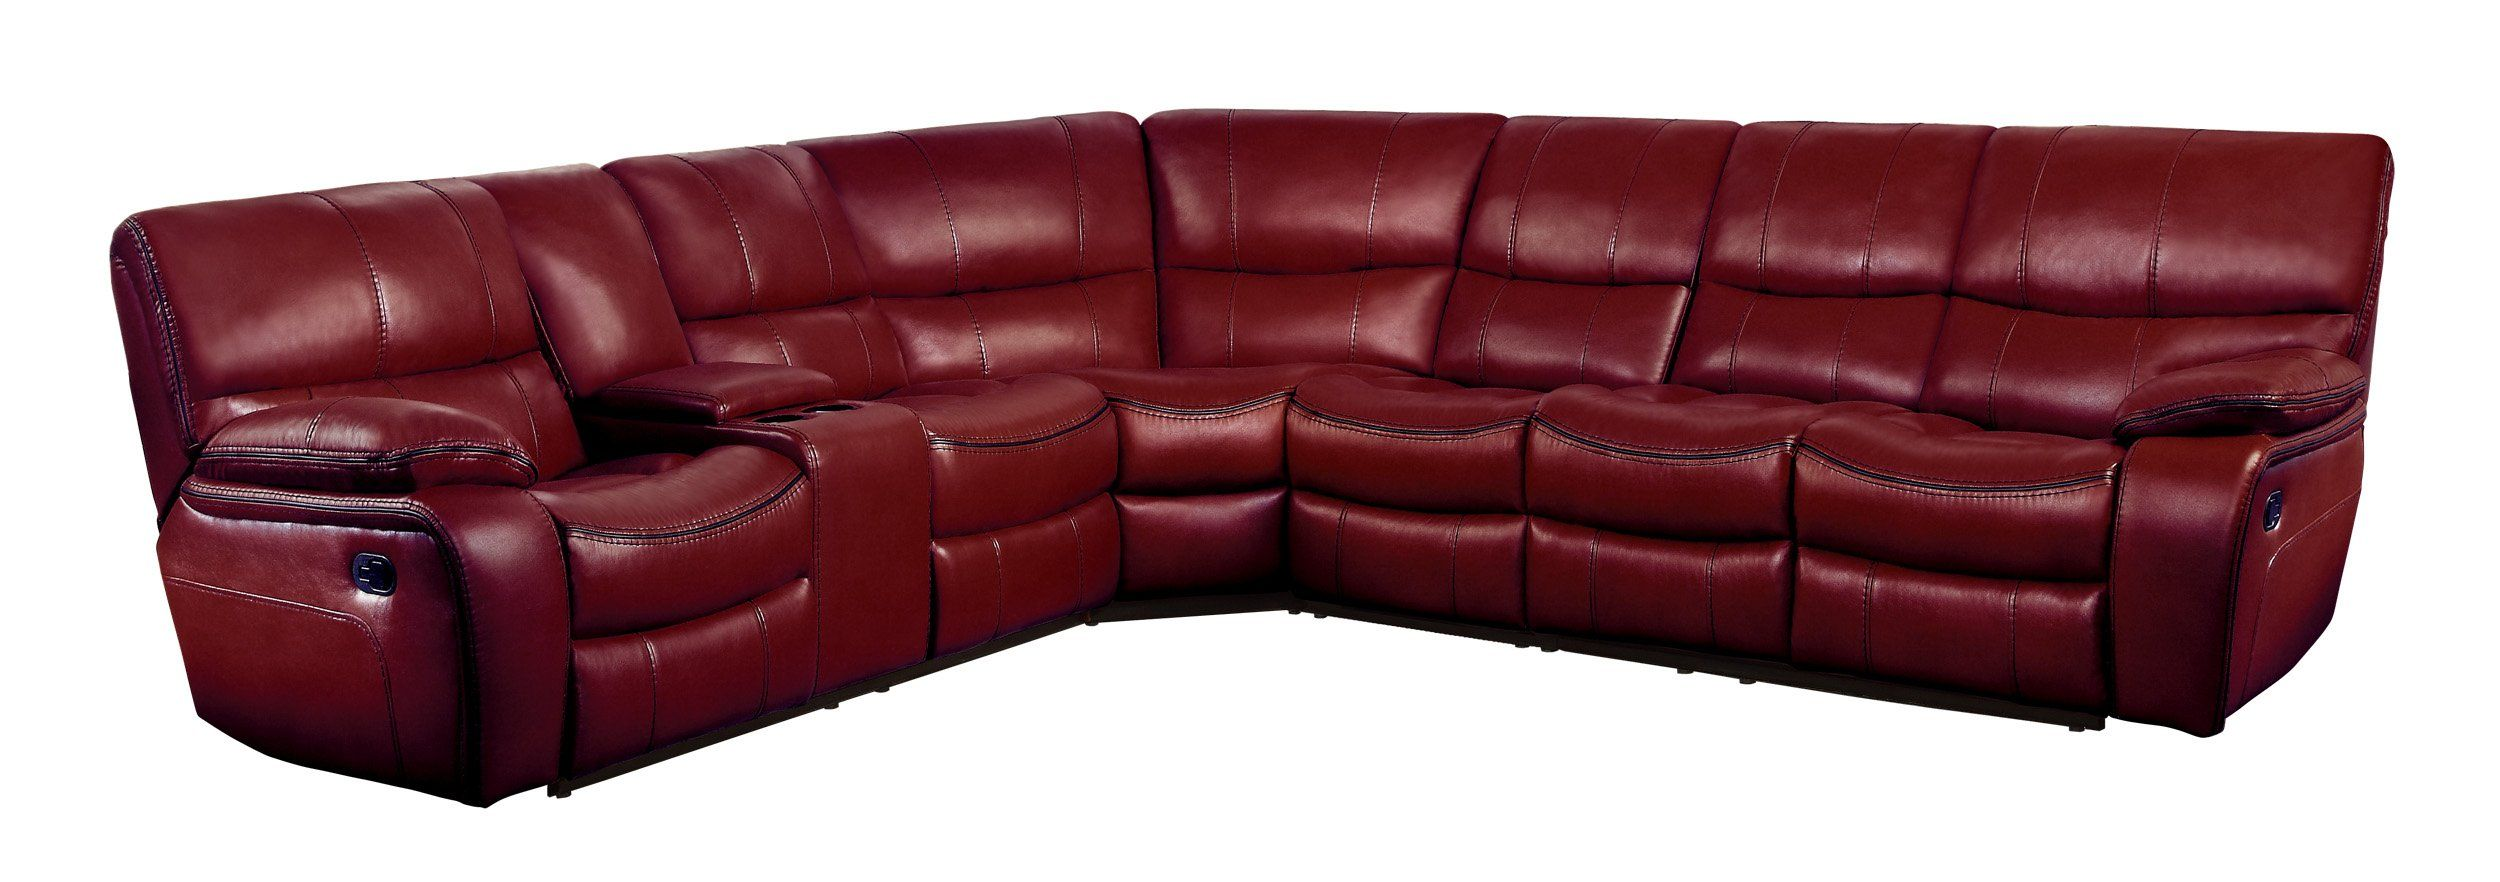 Homelegance Pecos 4 Piece Reclining Sectional Sofa with Cup Holder